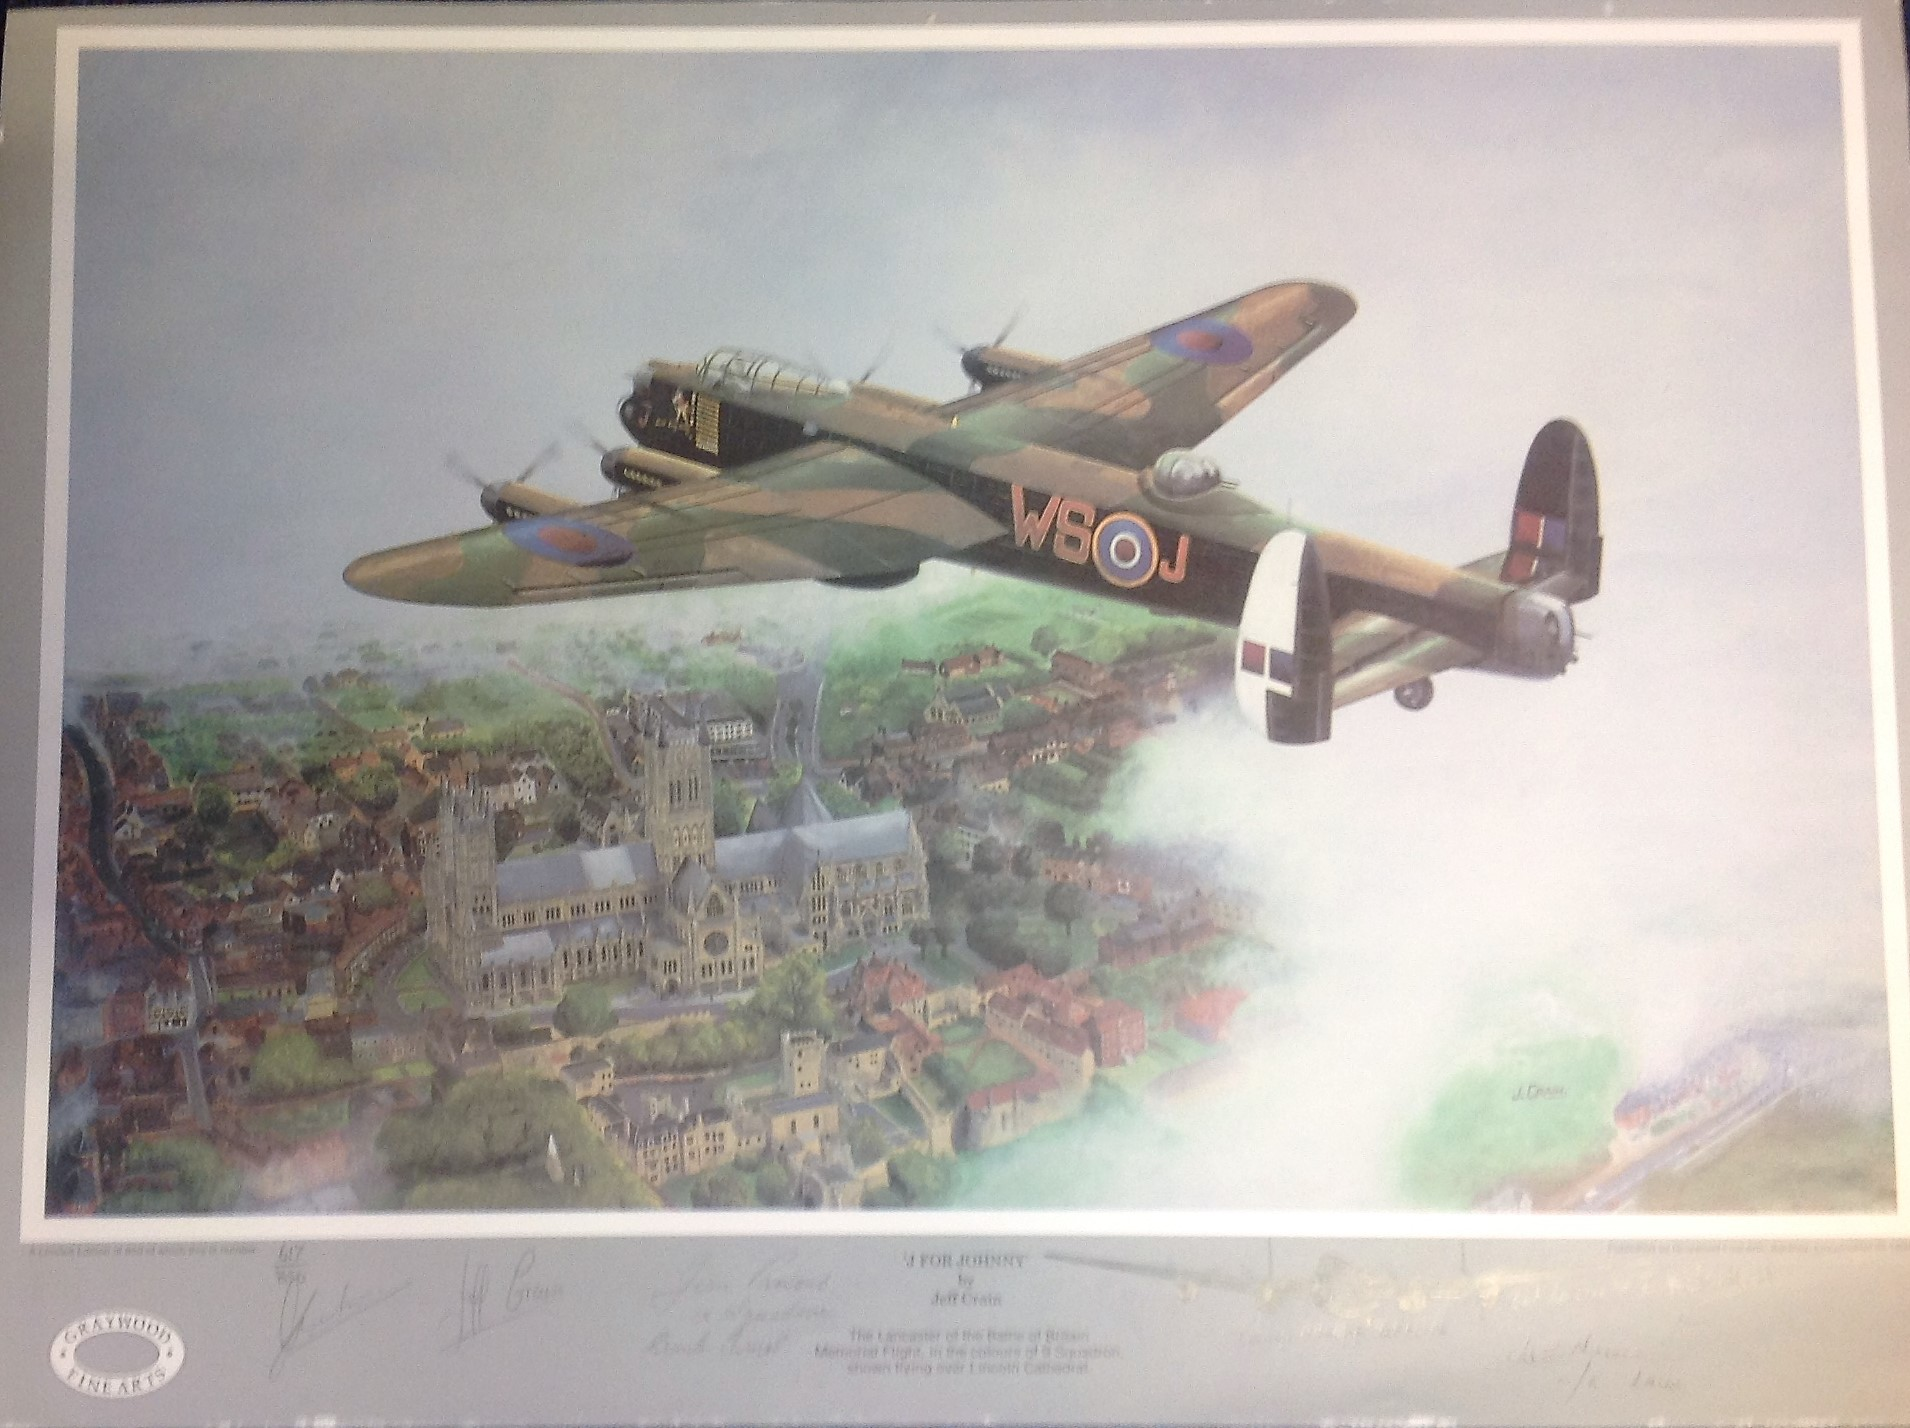 Lot 60 - World War Two print 22x16 titled J for Johnny by the artist Jeff Crain limited edition 617/850